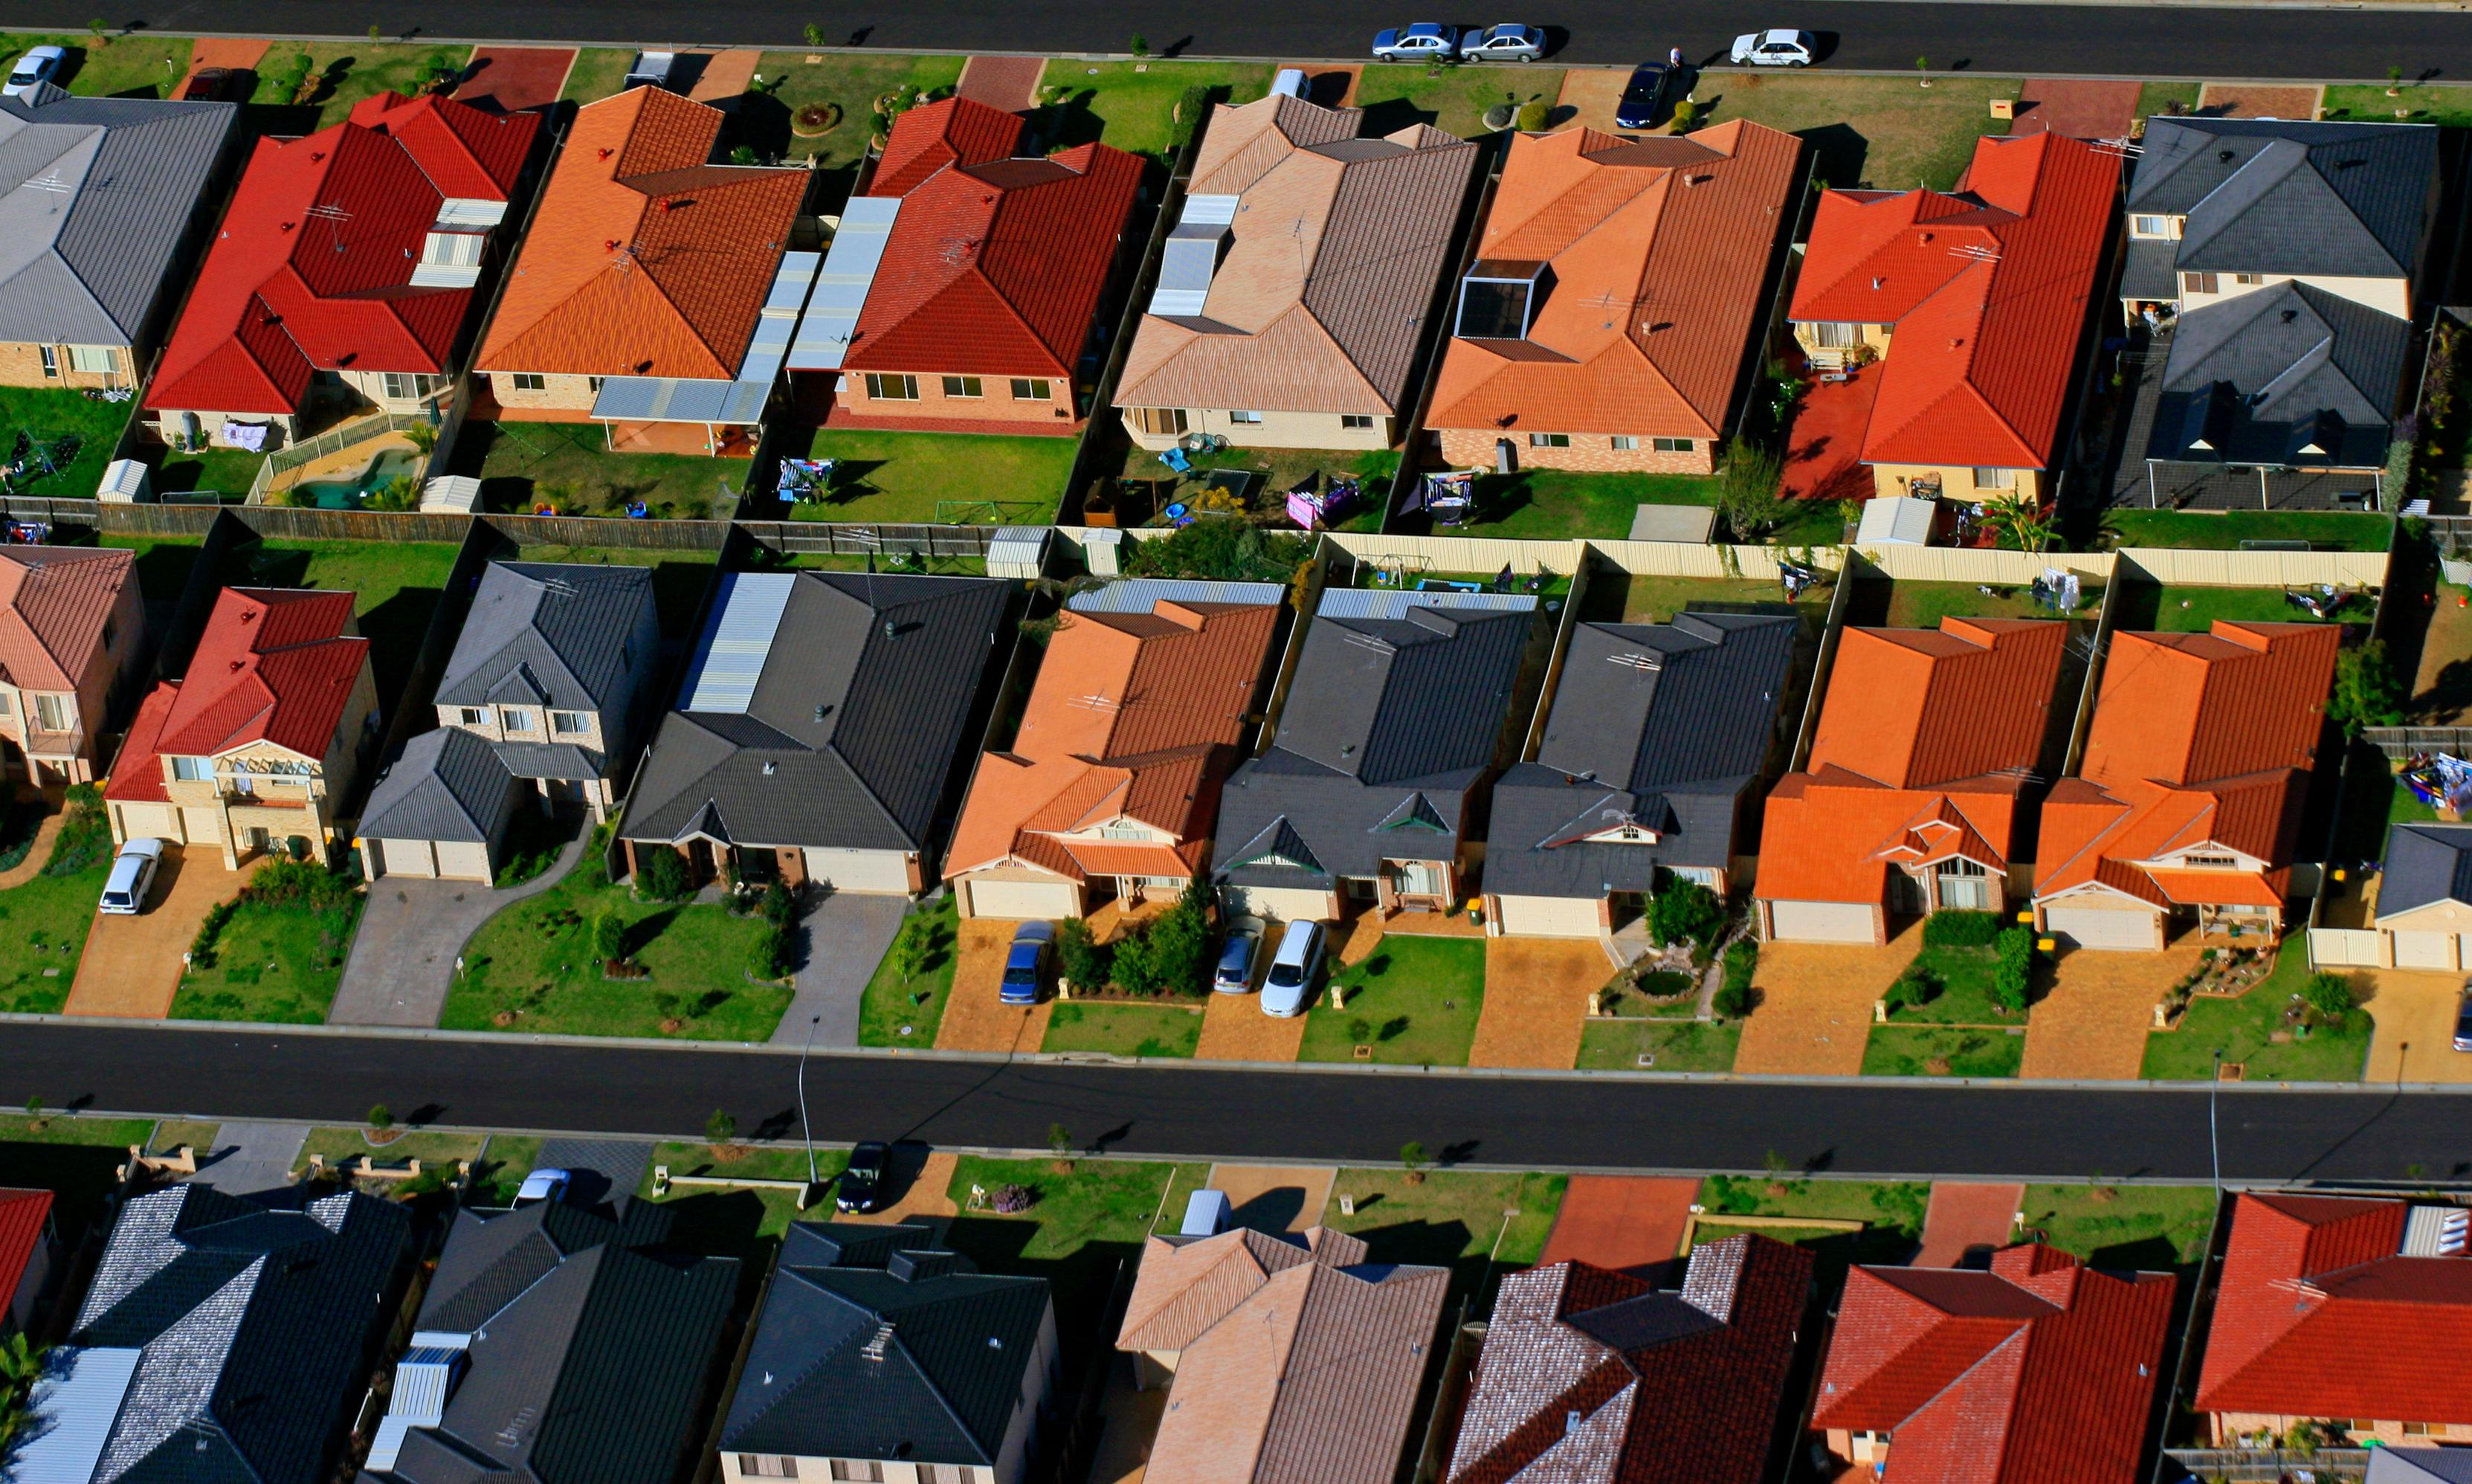 Sydney house prices have biggest monthly fall for 14 years and Melbourne close behind